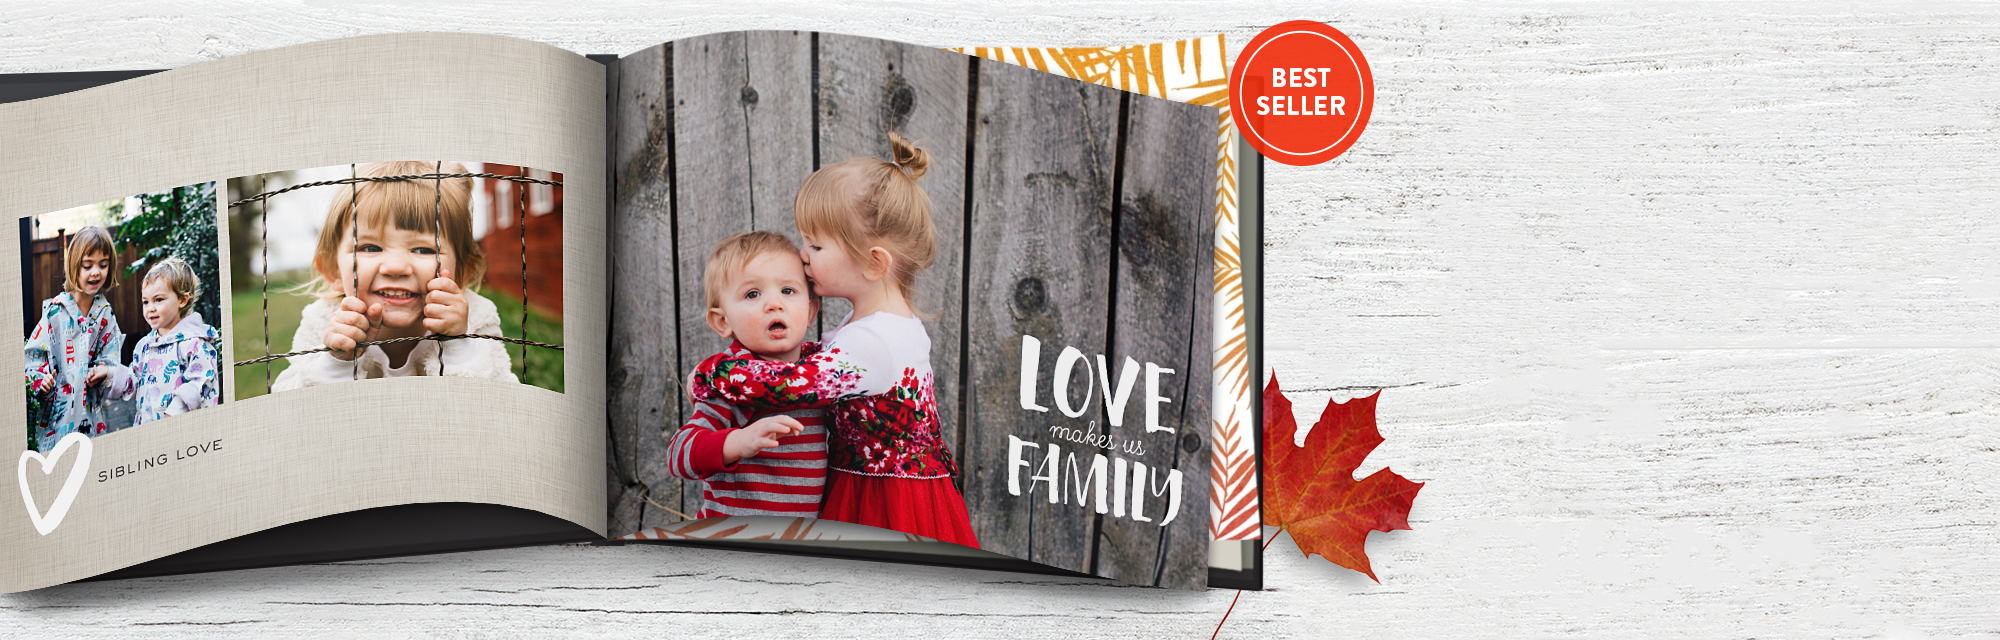 Share life's little blessings : Get inspired to create 8x11 hardcover photo books with our new fall designs.